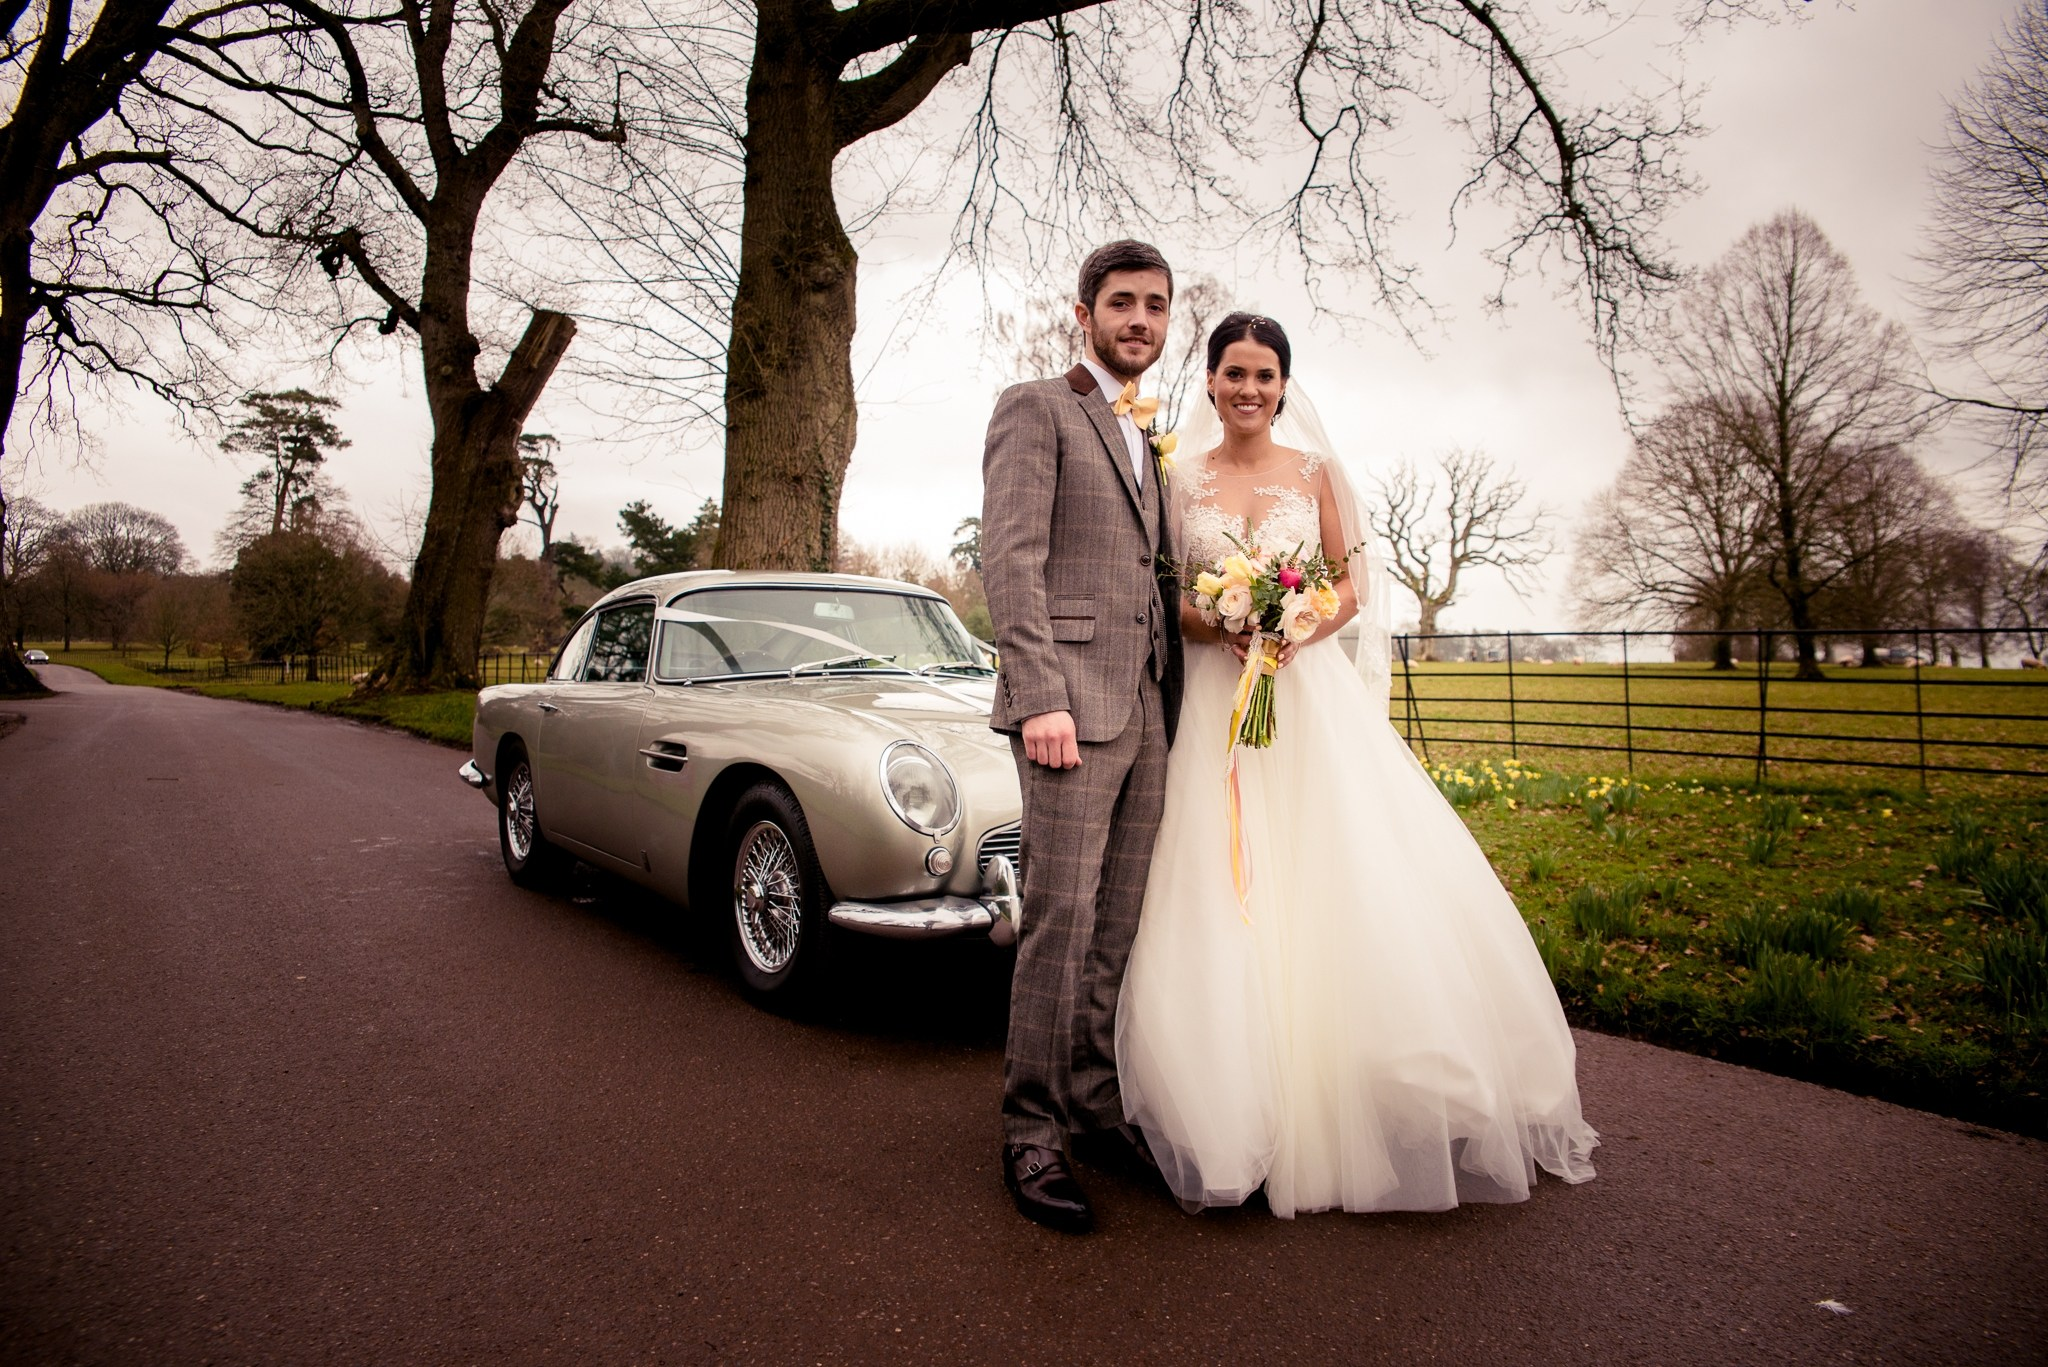 Bride and groom arrive by vintage car to Upton Barn & Walled Garden